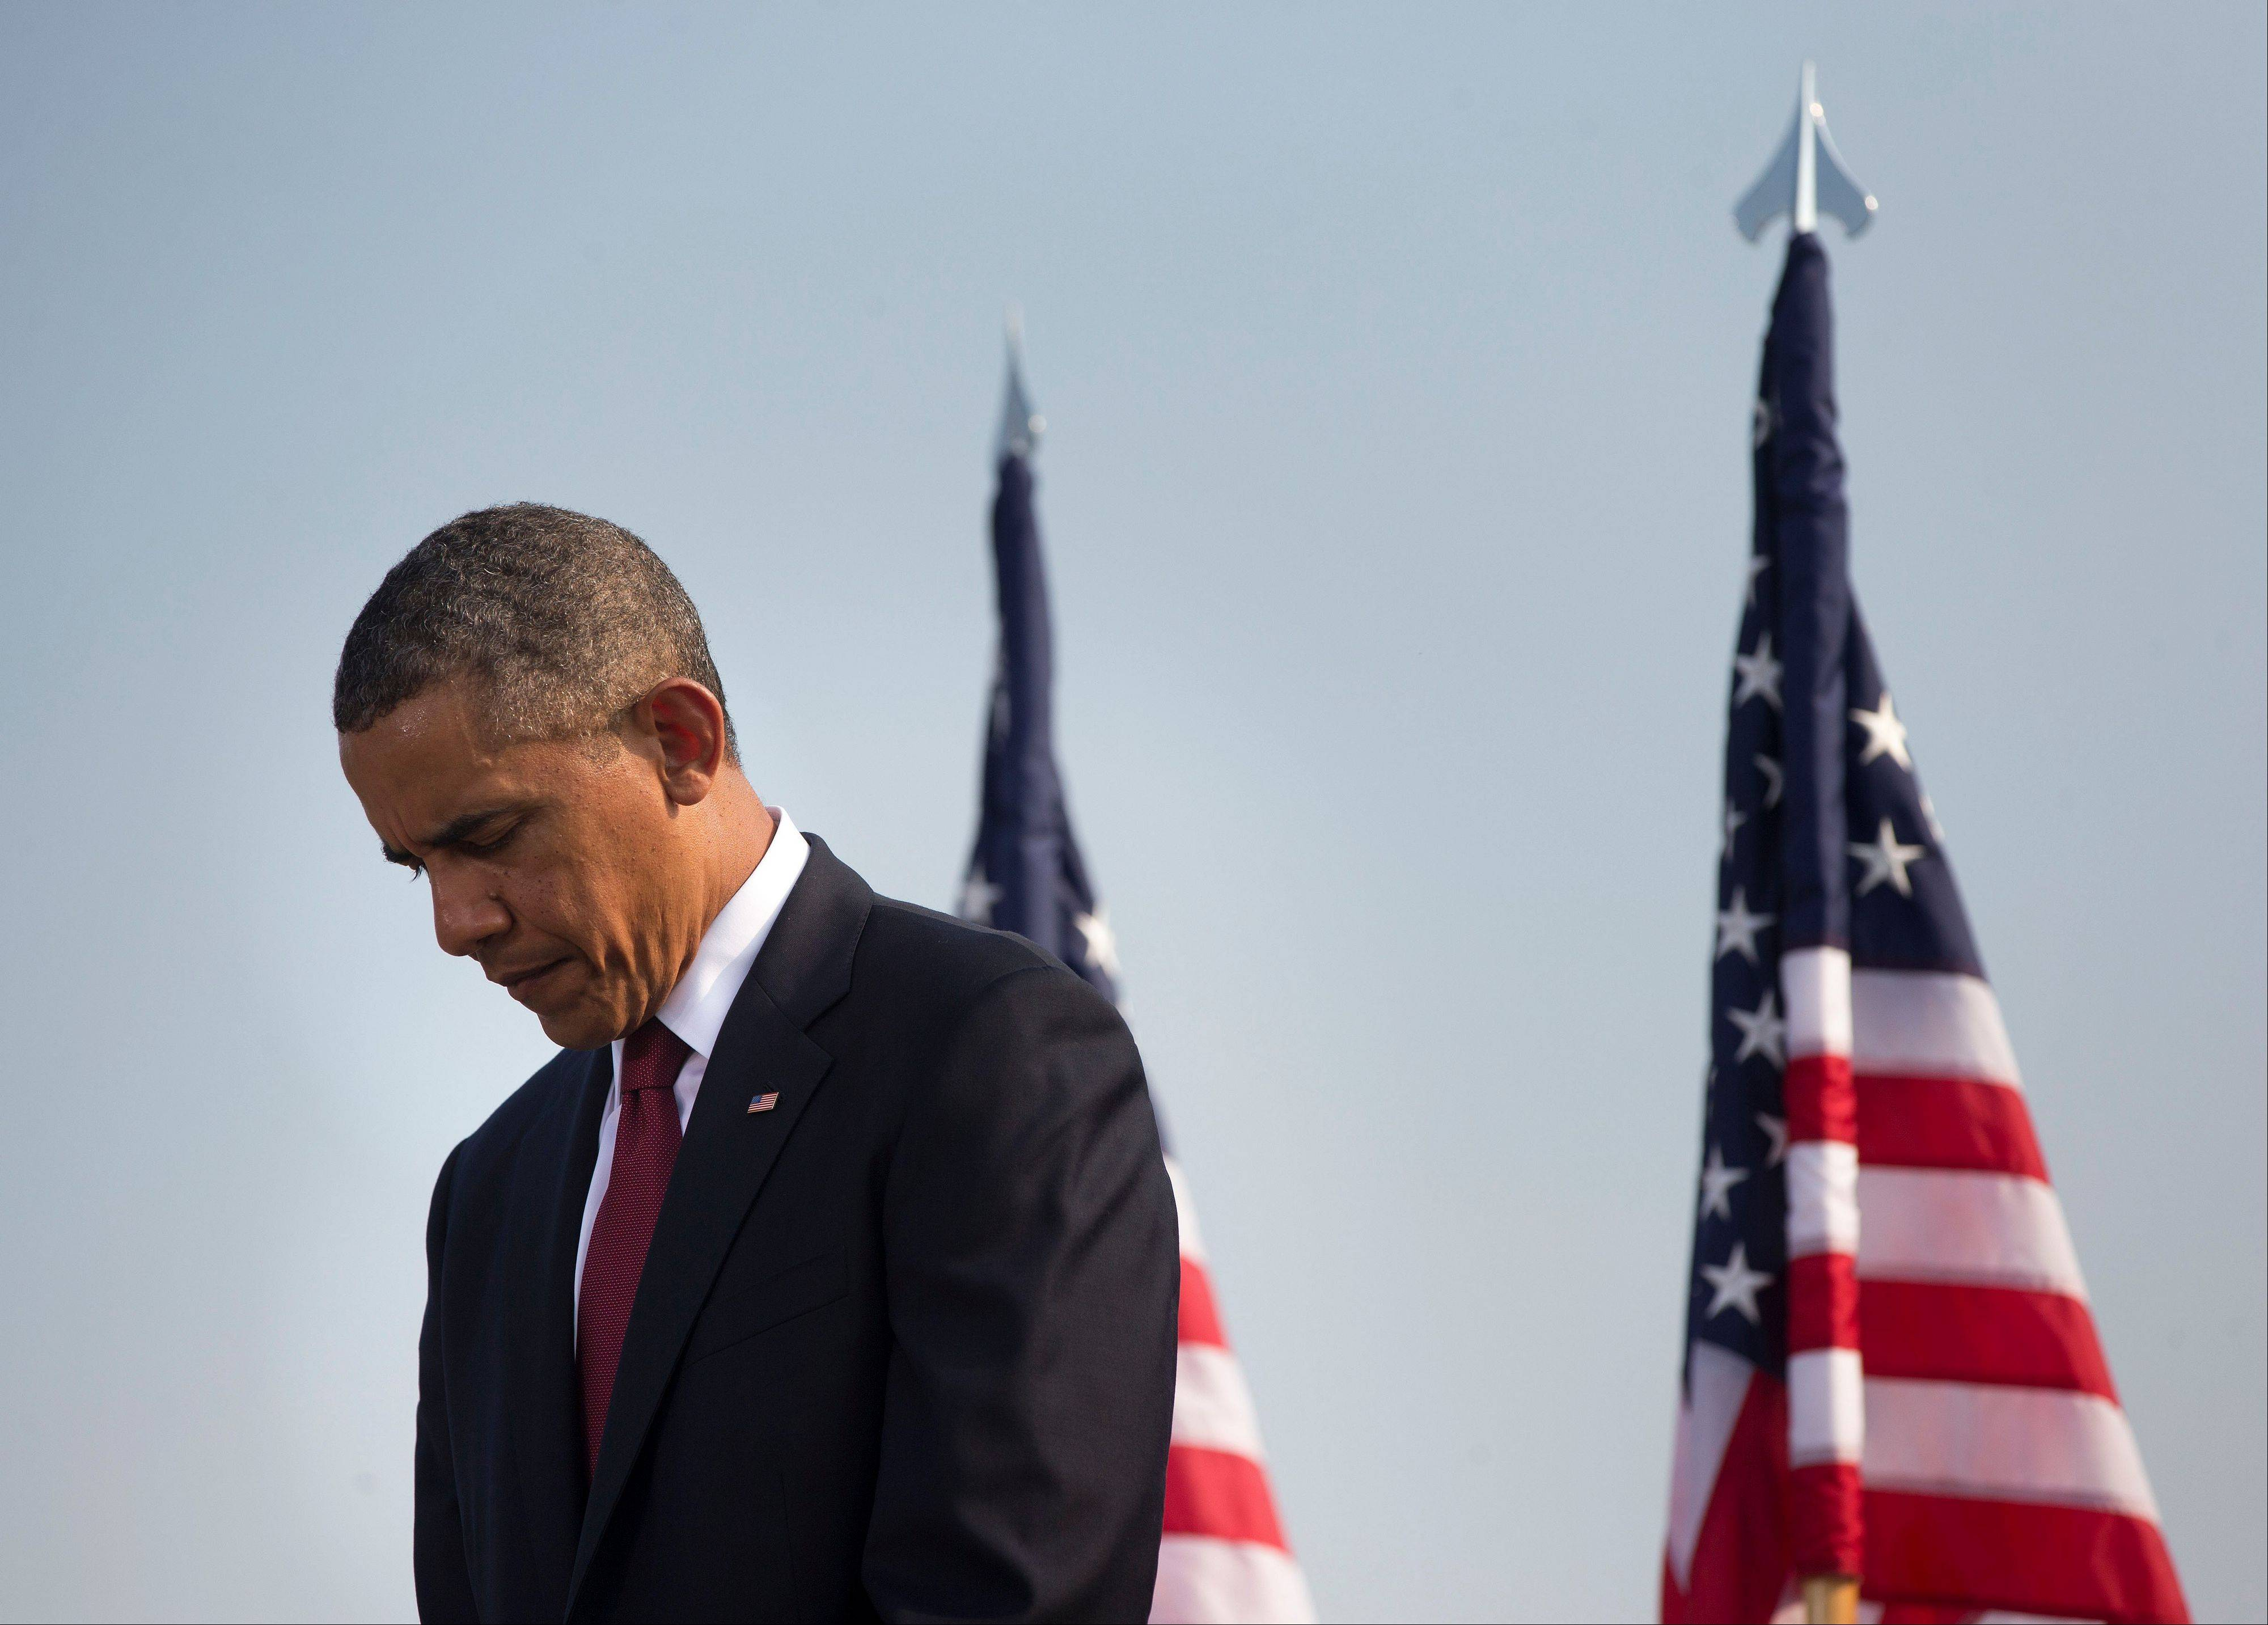 Obama pays tribute to the fallen of Sept. 11, 2001